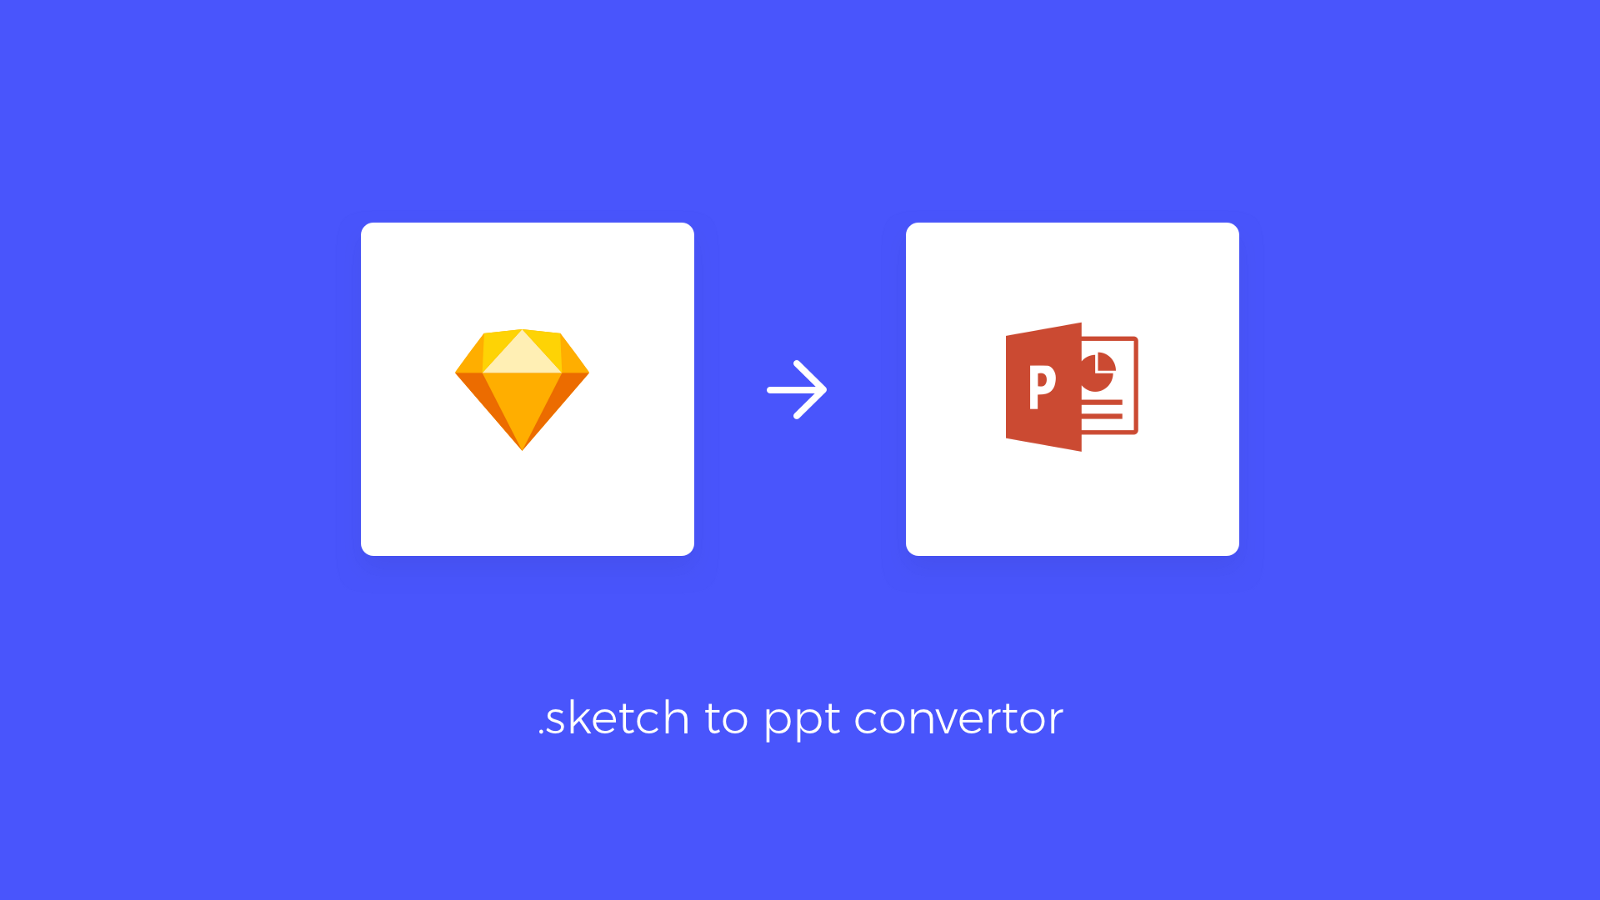 time to design pptkey presentations right in sketch and convert it to a ppt or key